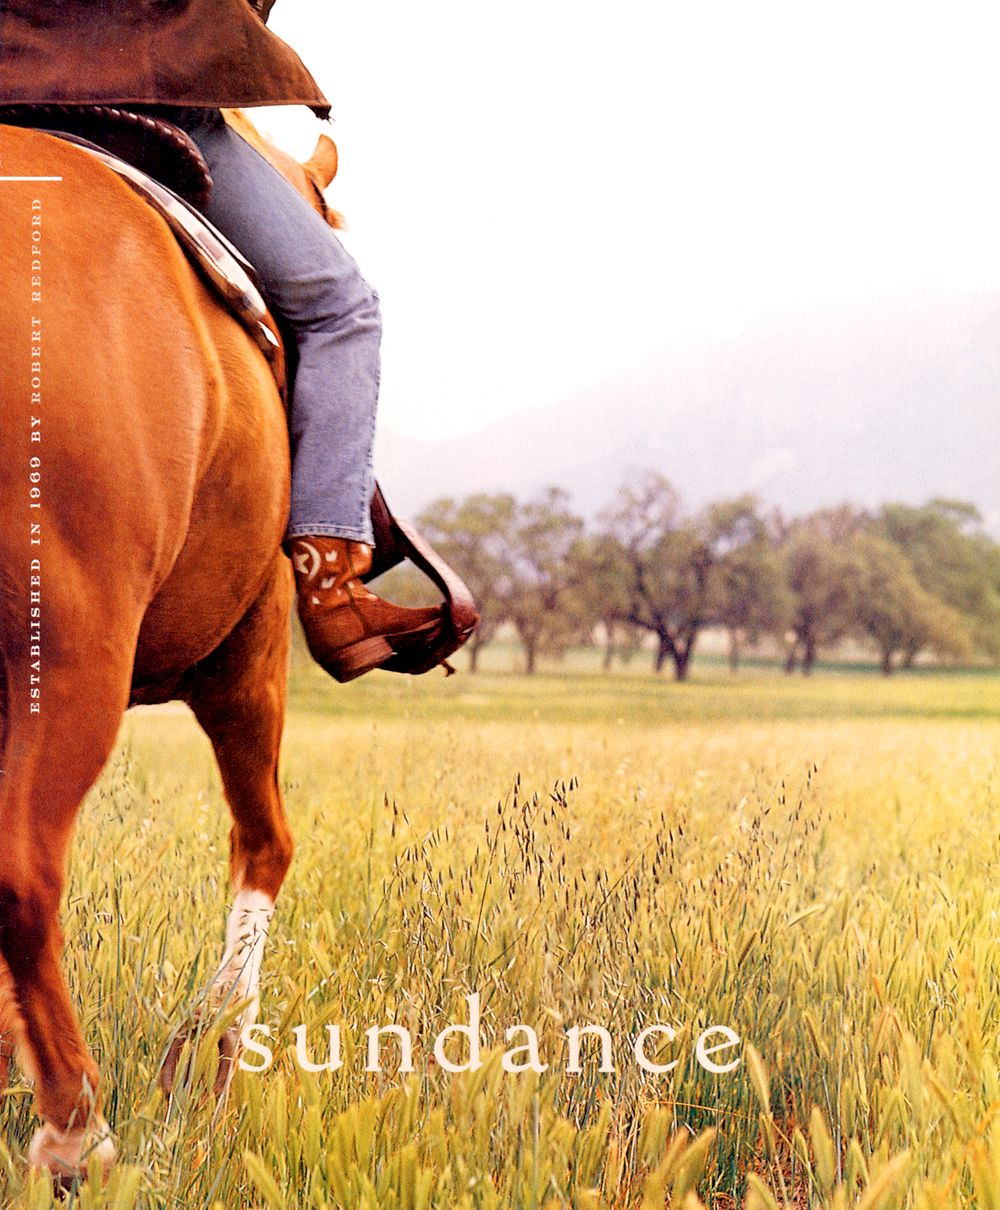 Sundance Magazine Girl on Horse